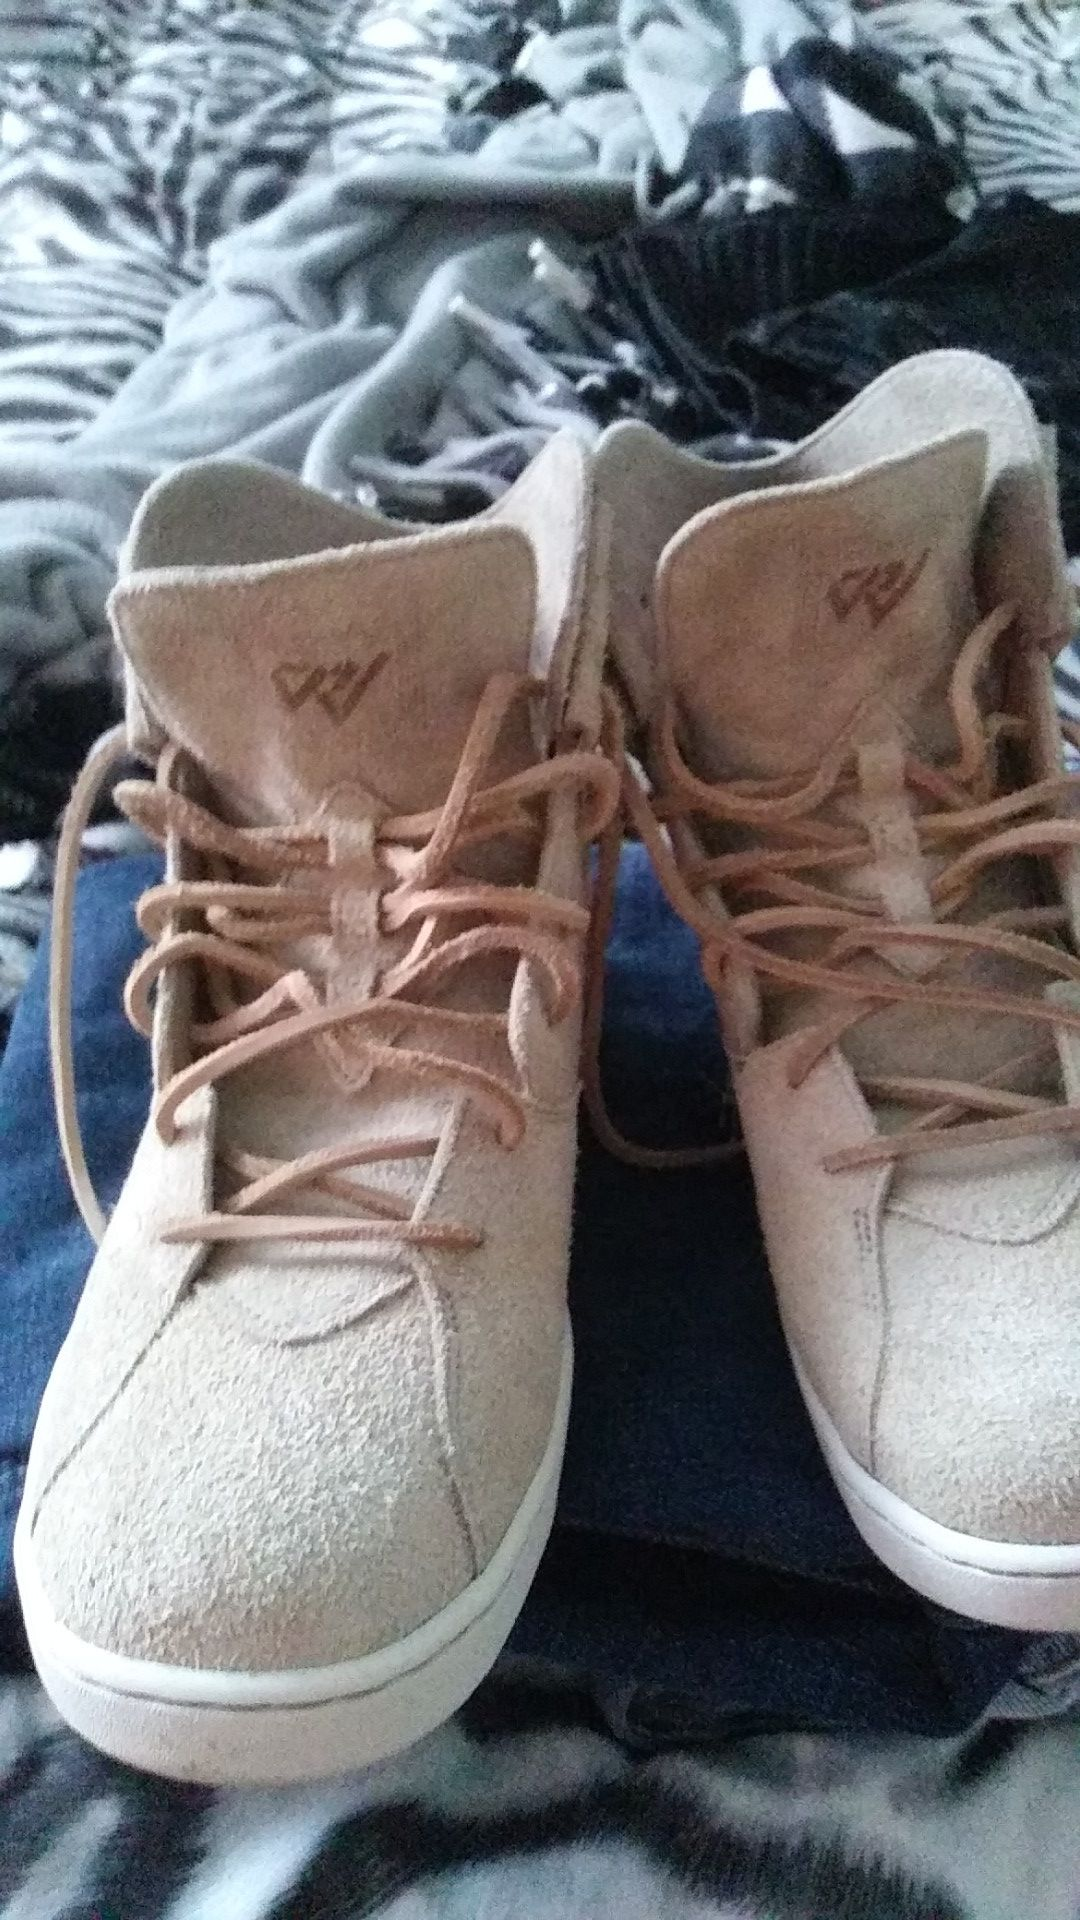 Ive got 6 pair of jeans..american eagle..flypaper..true luck..bigstar..levie....and a brand new pair of suede jordan tennis shoes!!!!